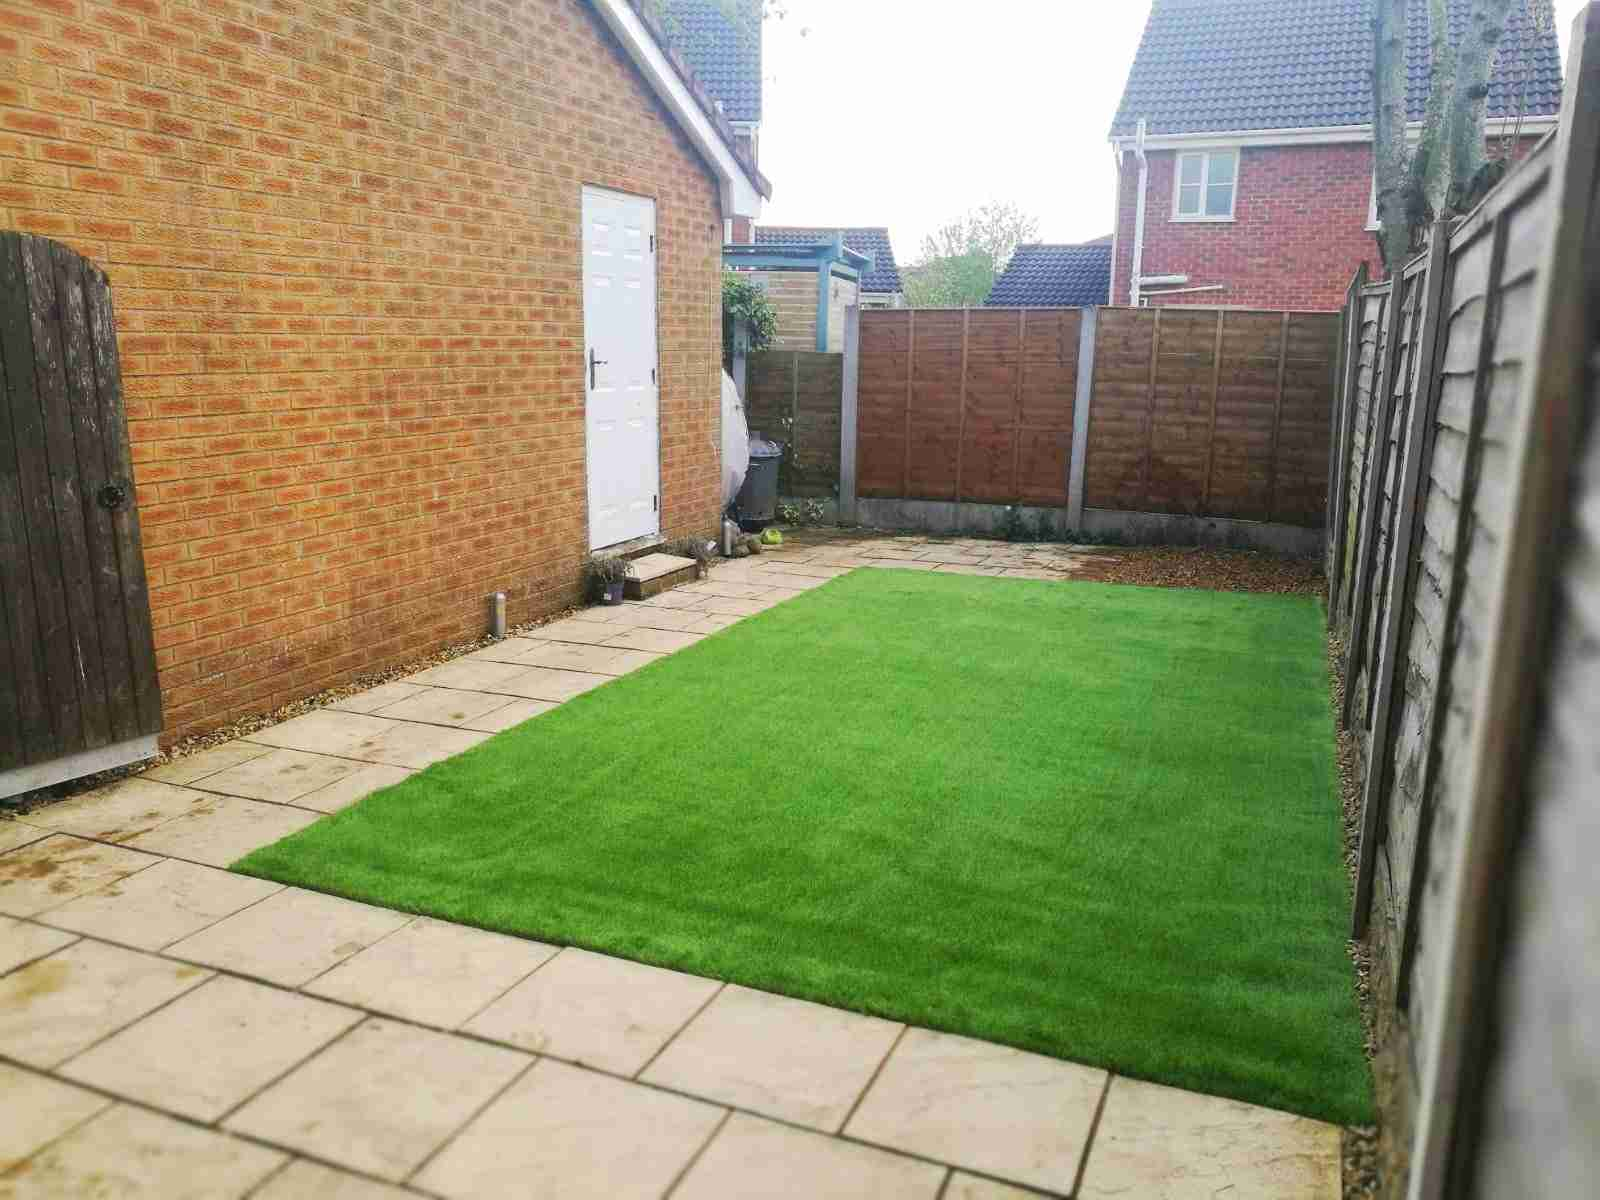 Square of artificial grass surrounded by paving